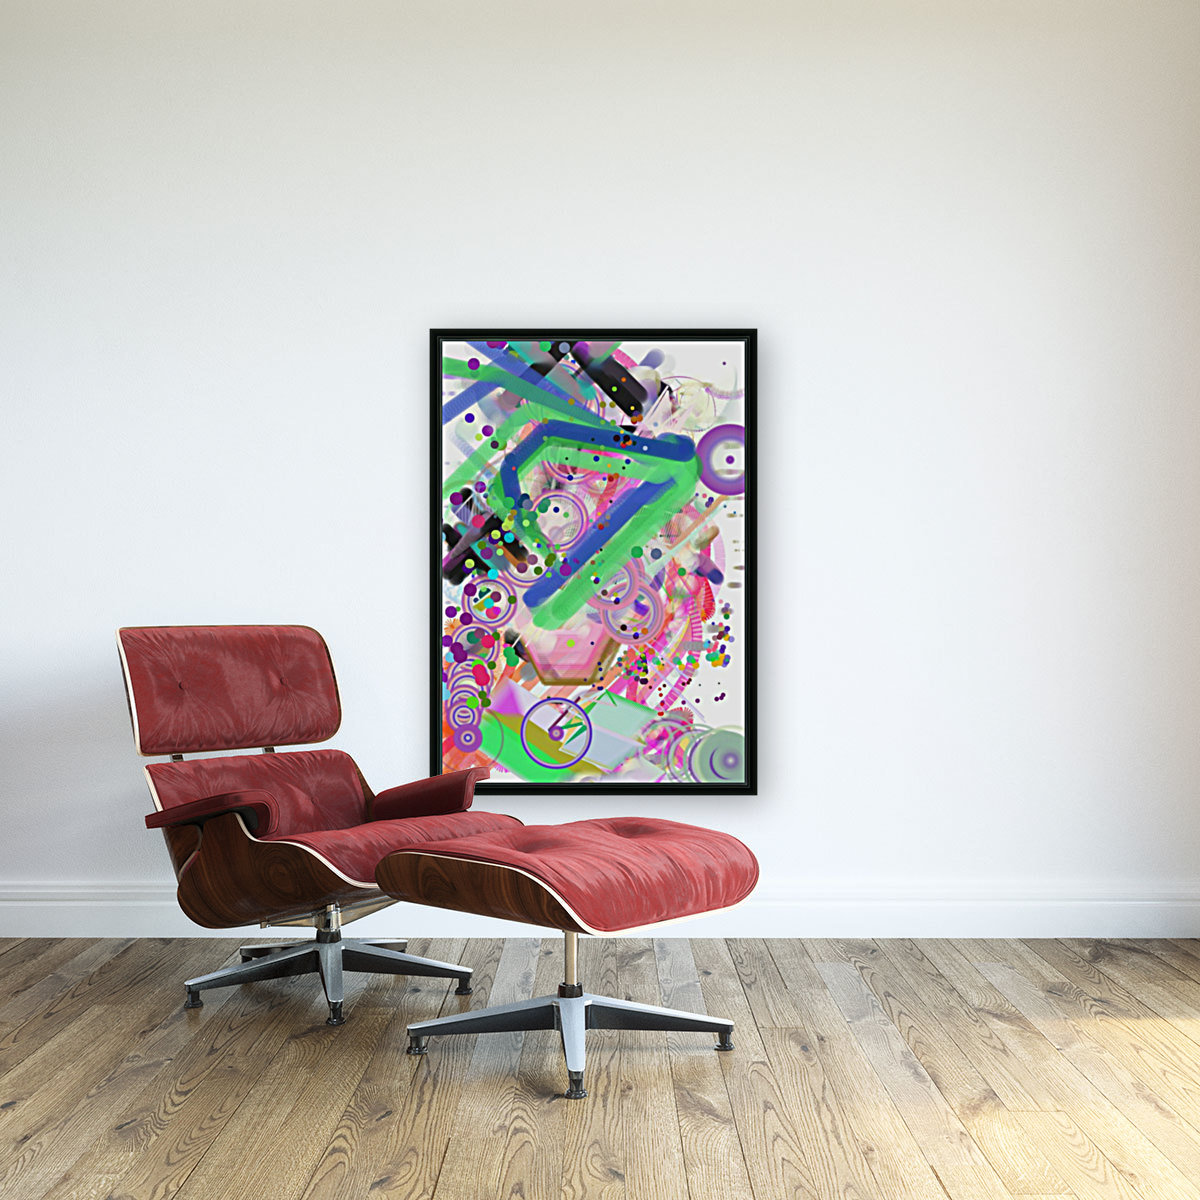 New Popular Beautiful Patterns Cool Design Best Abstract Art_1557269361.88 with Floating Frame